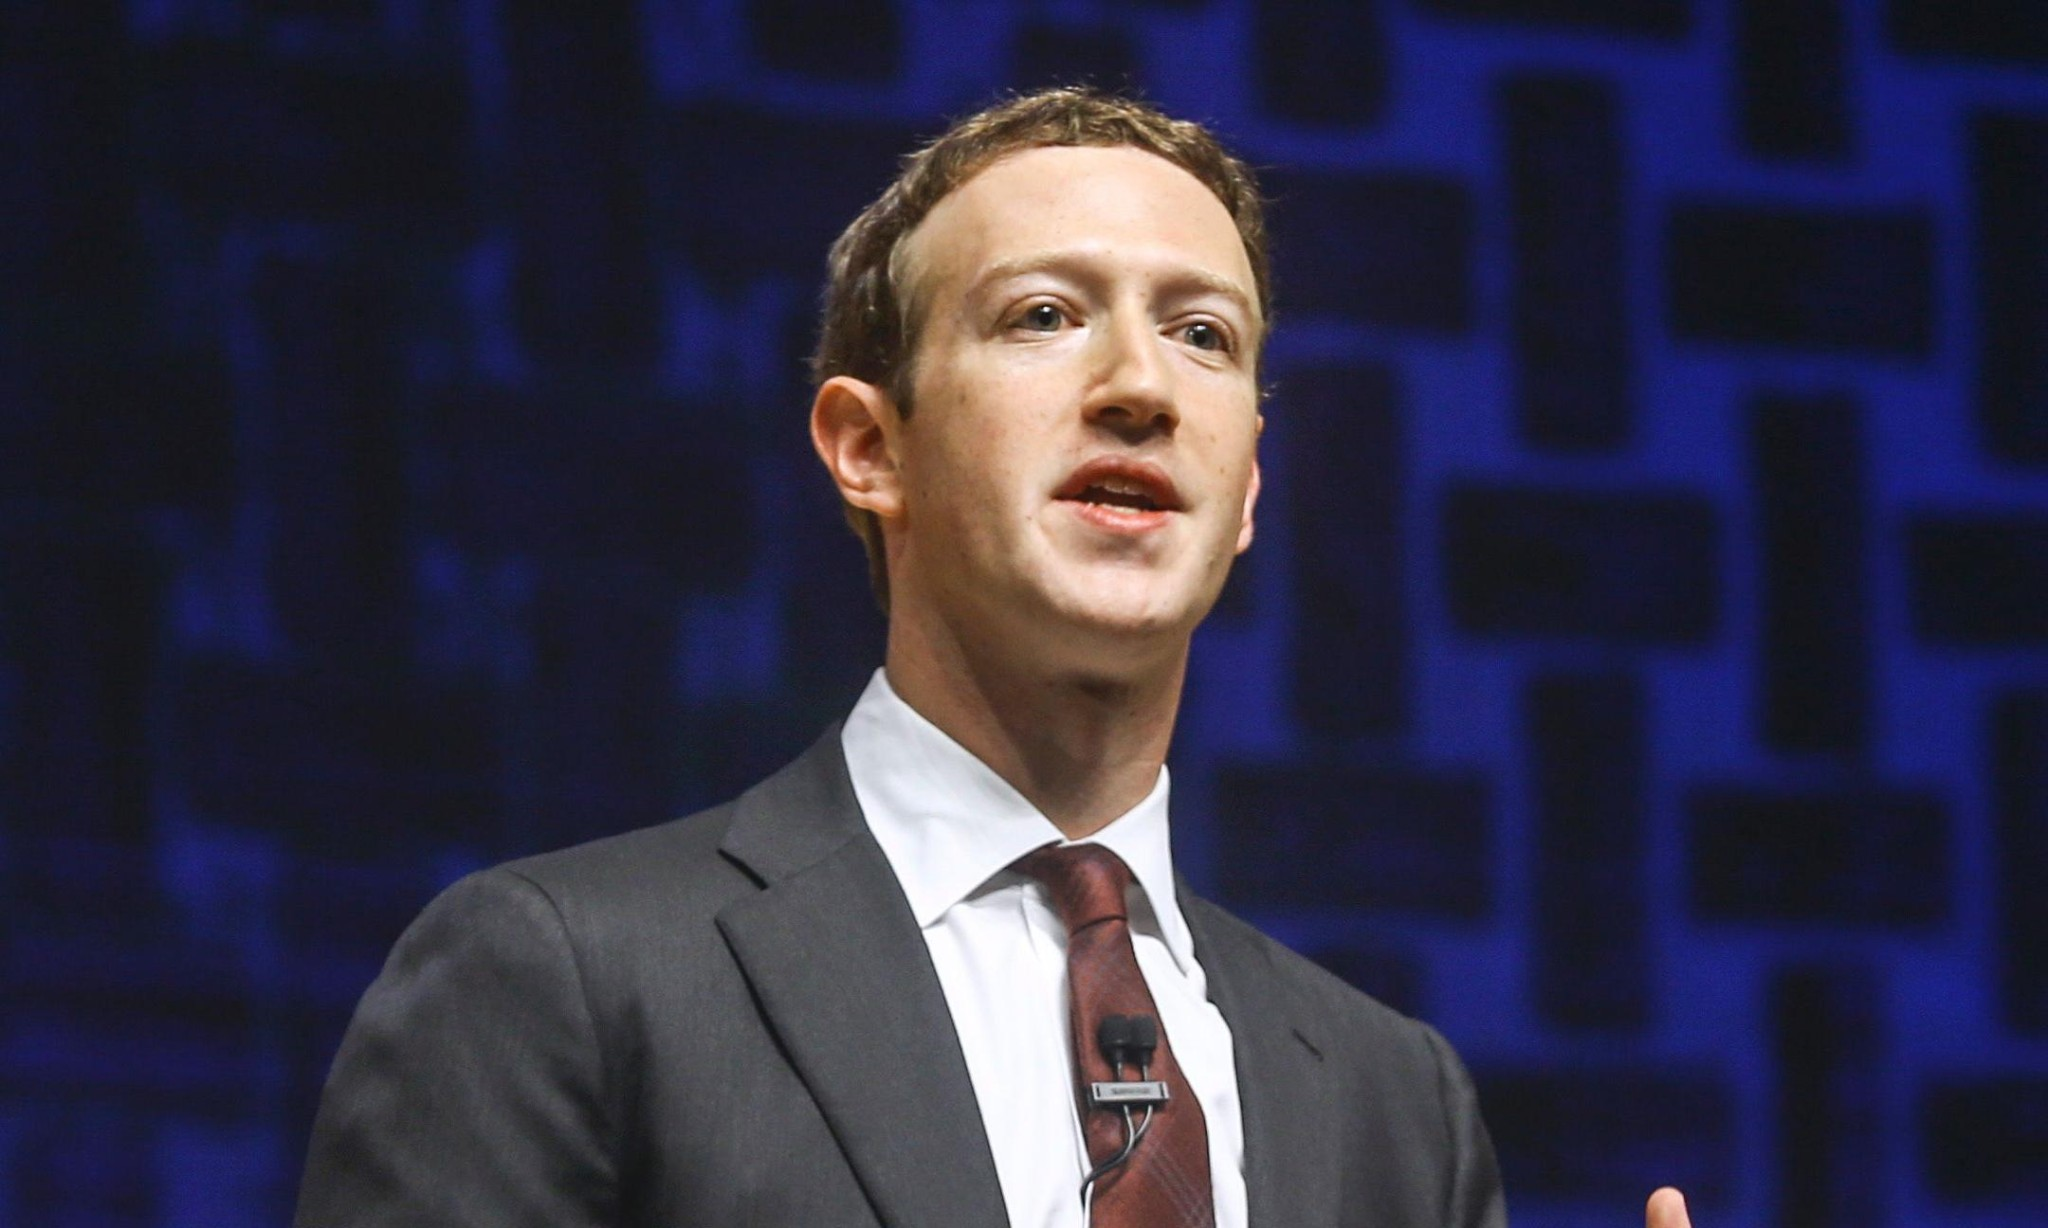 Facebook announces new push against fake news after Obama comments